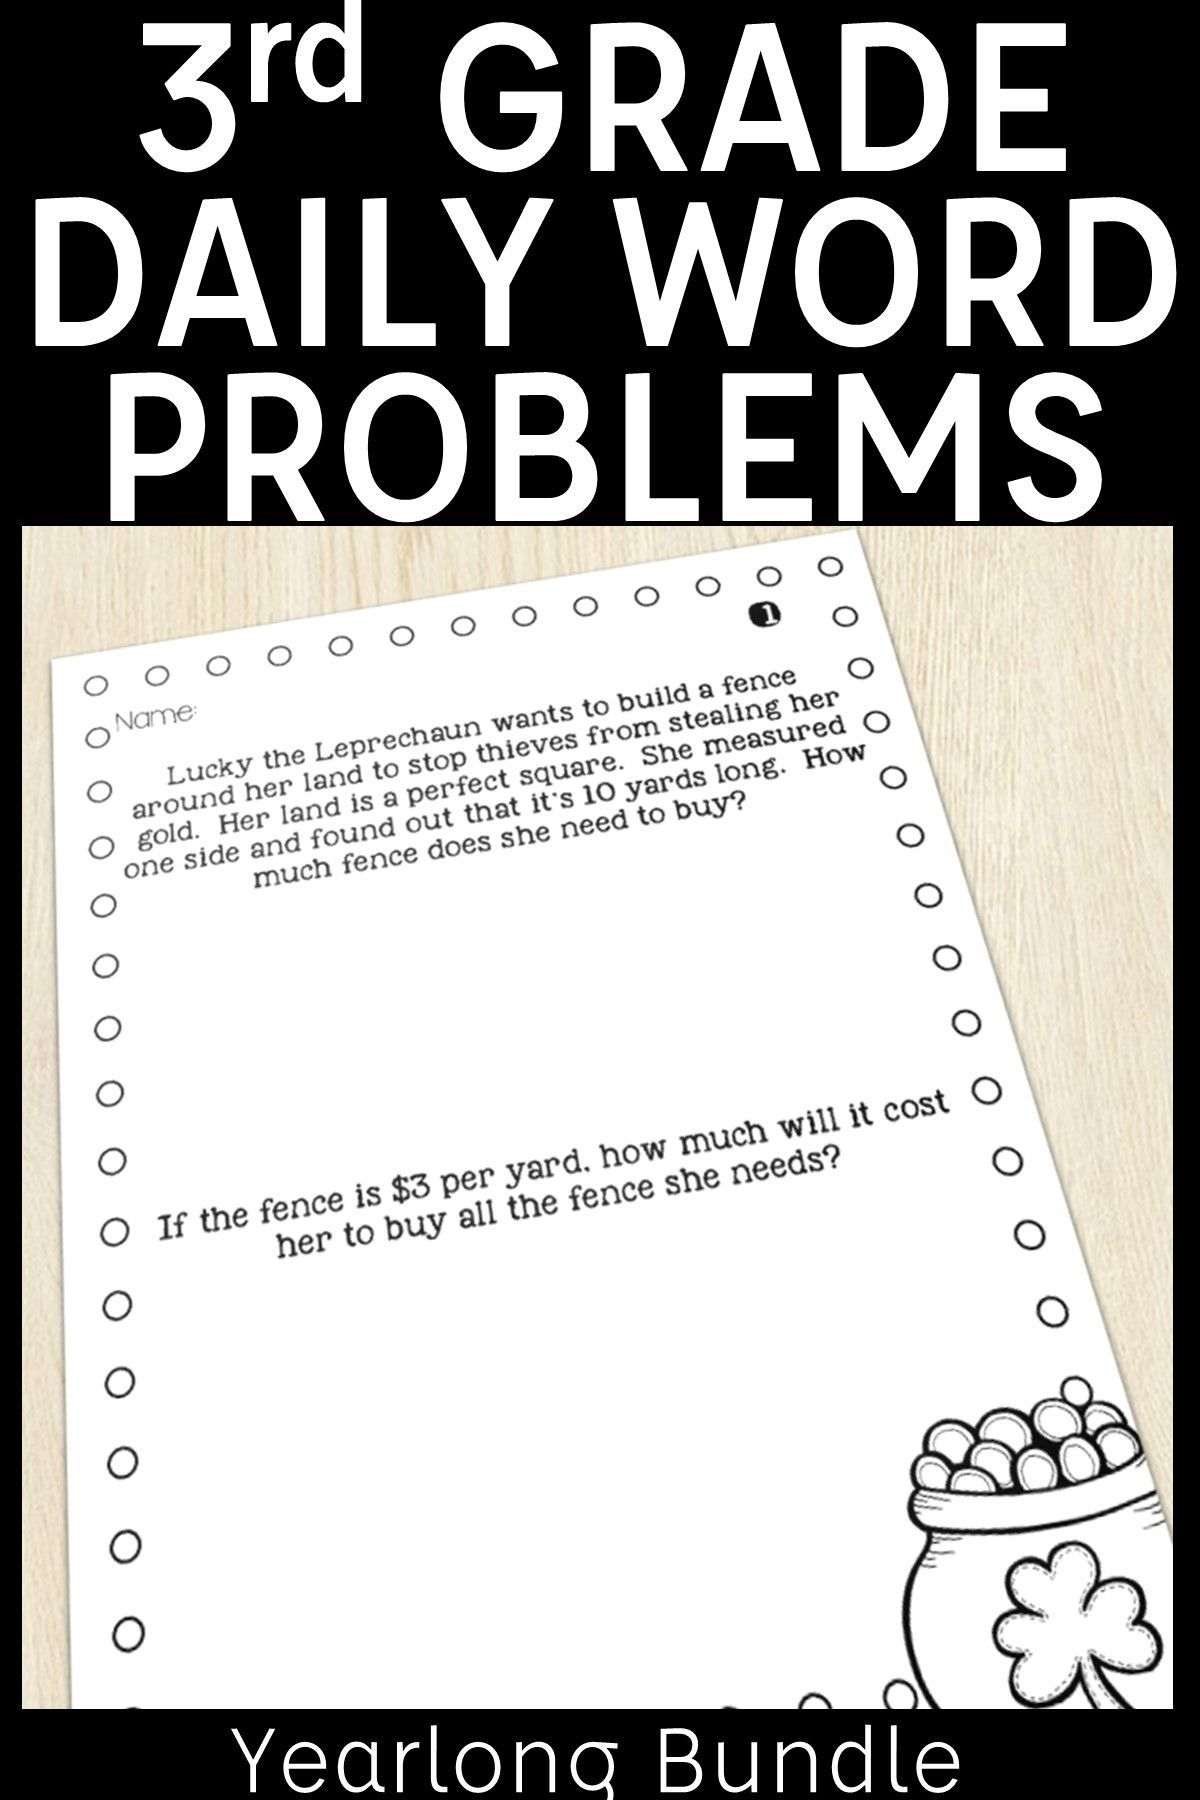 hight resolution of https://cute766.info/3rd-grade-multi-step-word-problems-of-the-day-bundle-3rd-grade-words-word-problems/